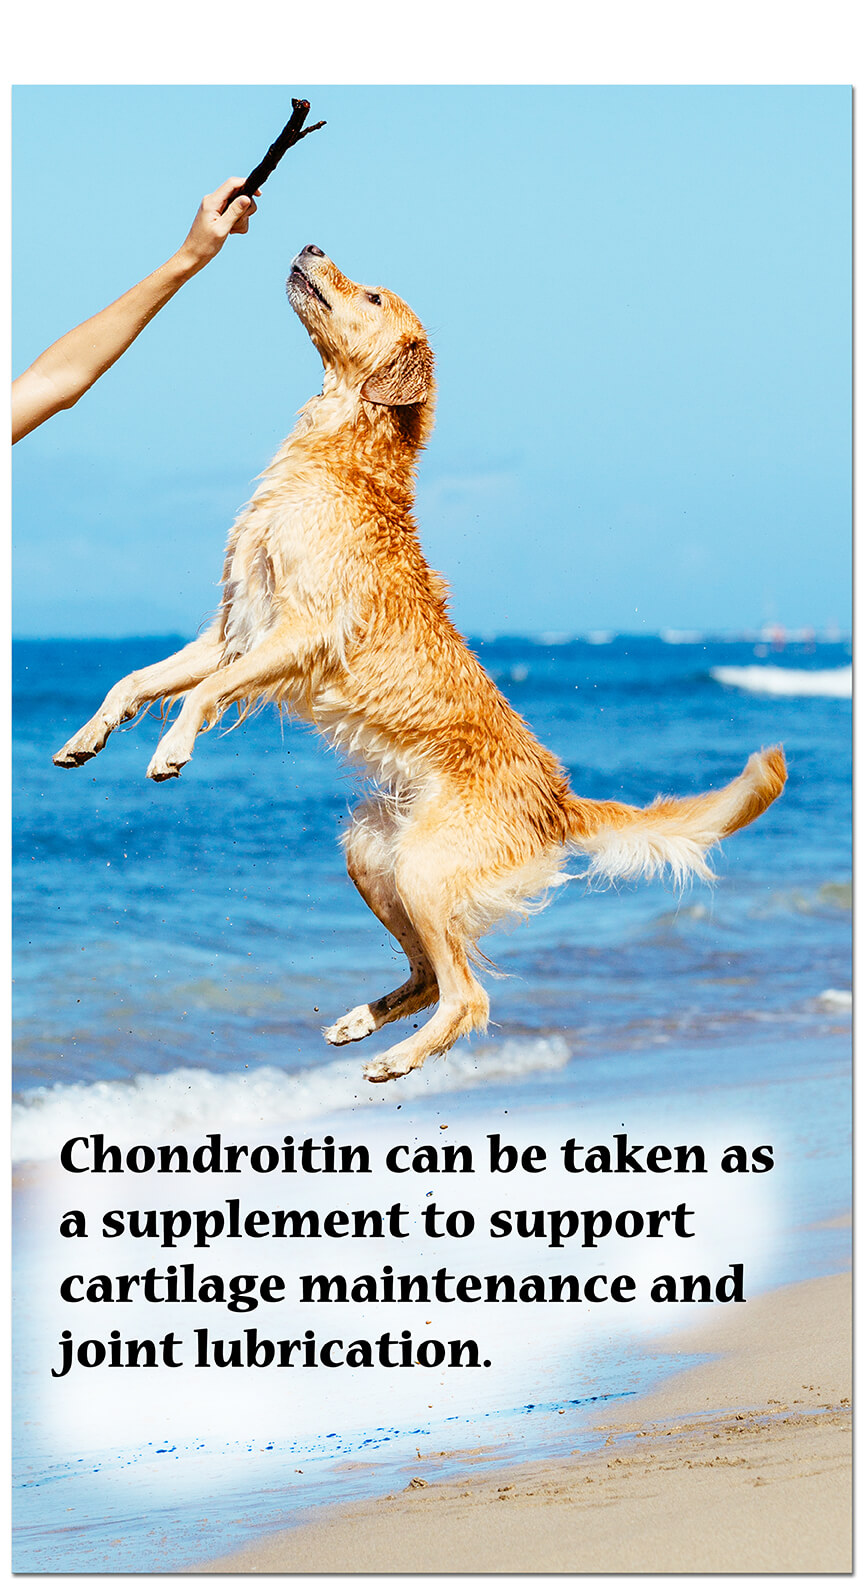 Chondroitin can be taken as a supplement to support healthy joints.